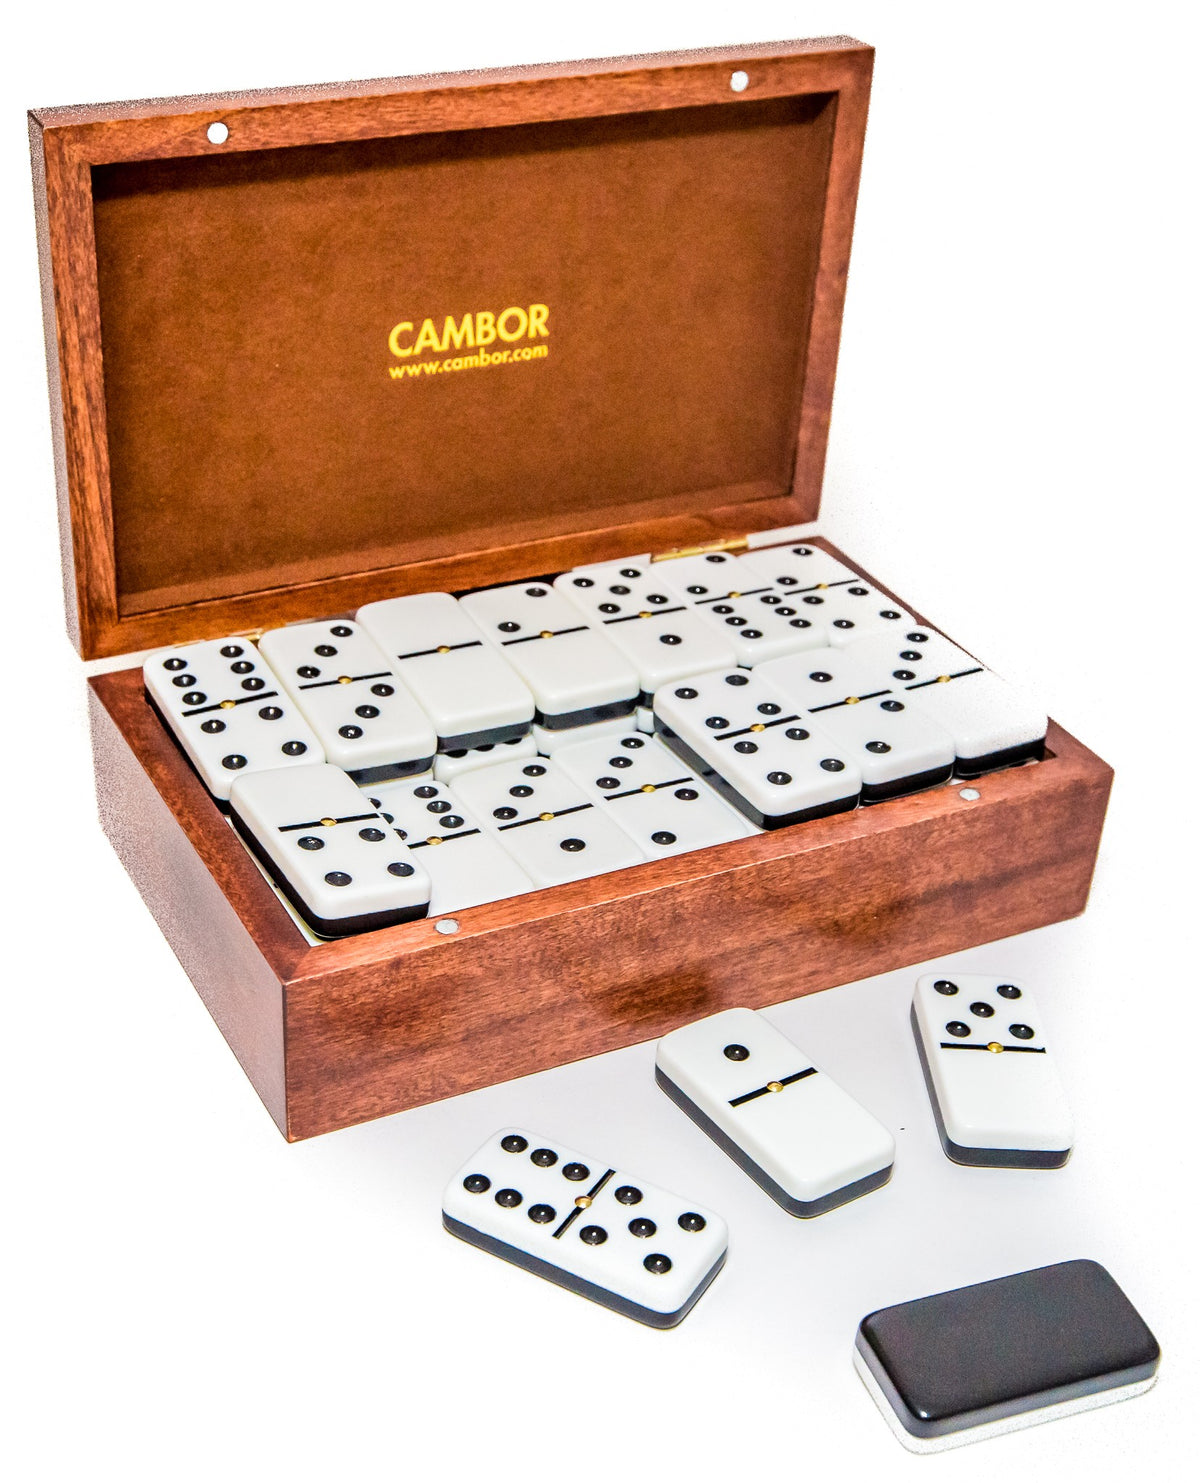 Deluxe Jumbo Size Double Nine Dominoes Set with elegant walnut finish box